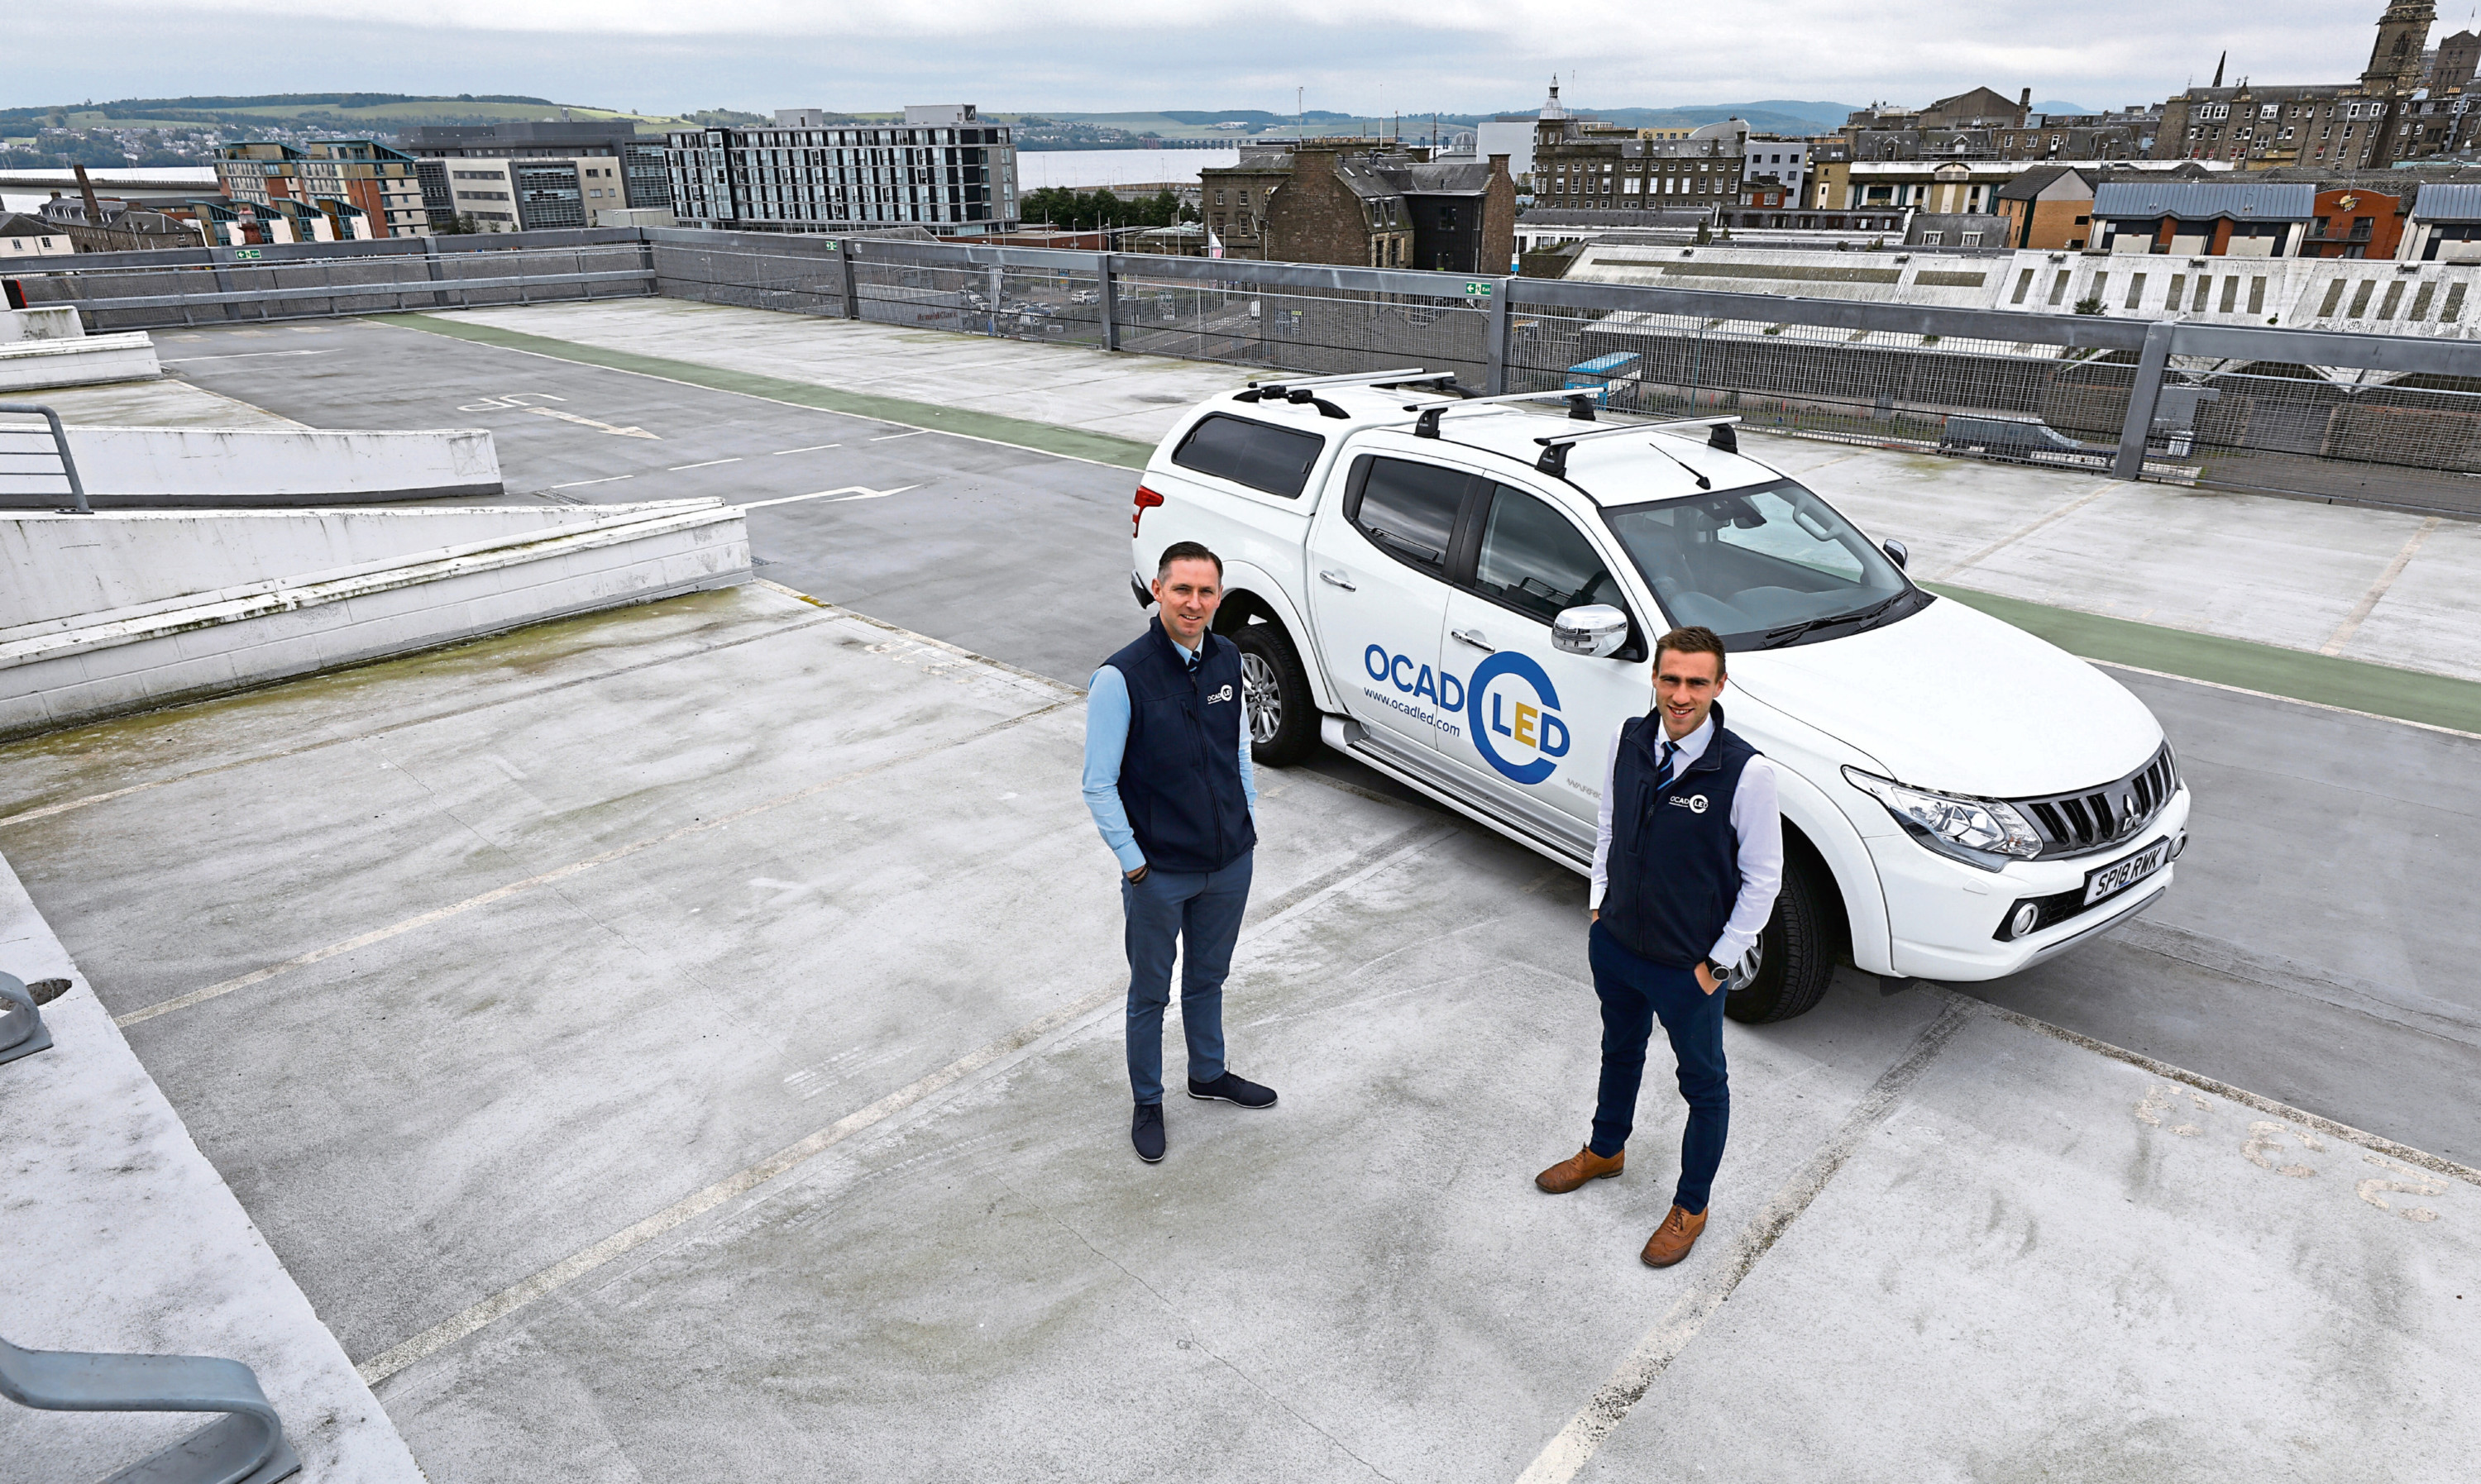 OCAD LED managing director Euan Donaldson and project manager Gary Mackie at Olympia car park in Dundee, where they have upgraded the lighting systems.